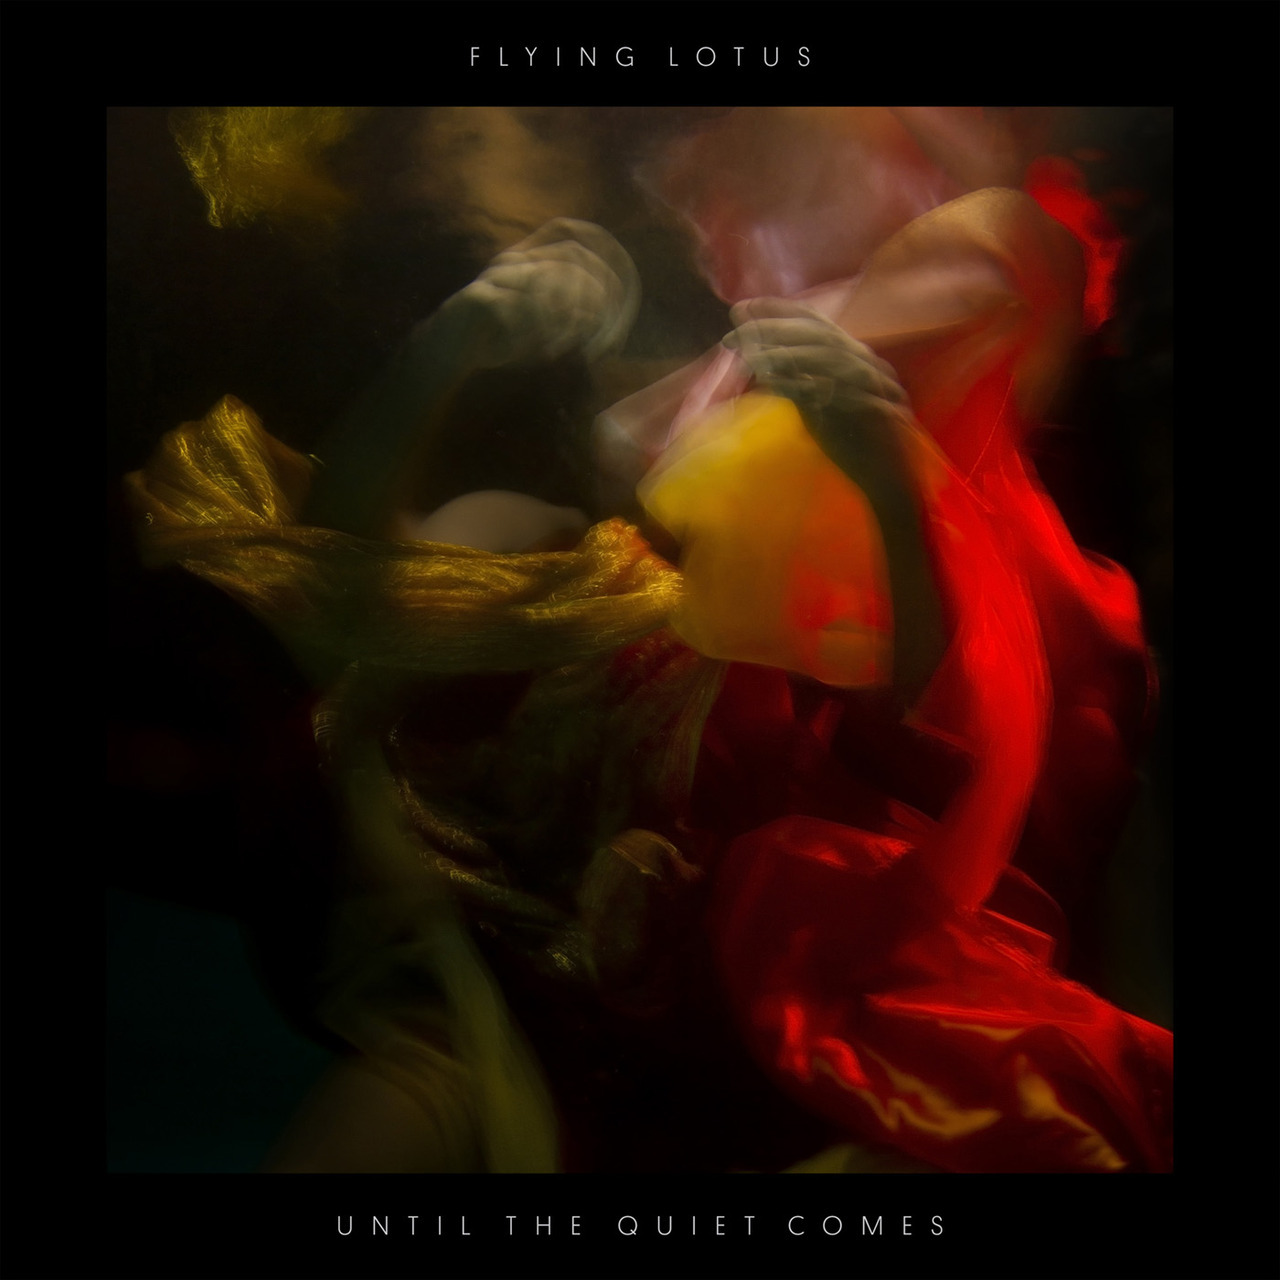 It's finally here. Flying Lotus- Until the Quiet Comes. If you'd like to read up on him a bit, here you go:  http://en.wikipedia.org/wiki/Flying_Lotus